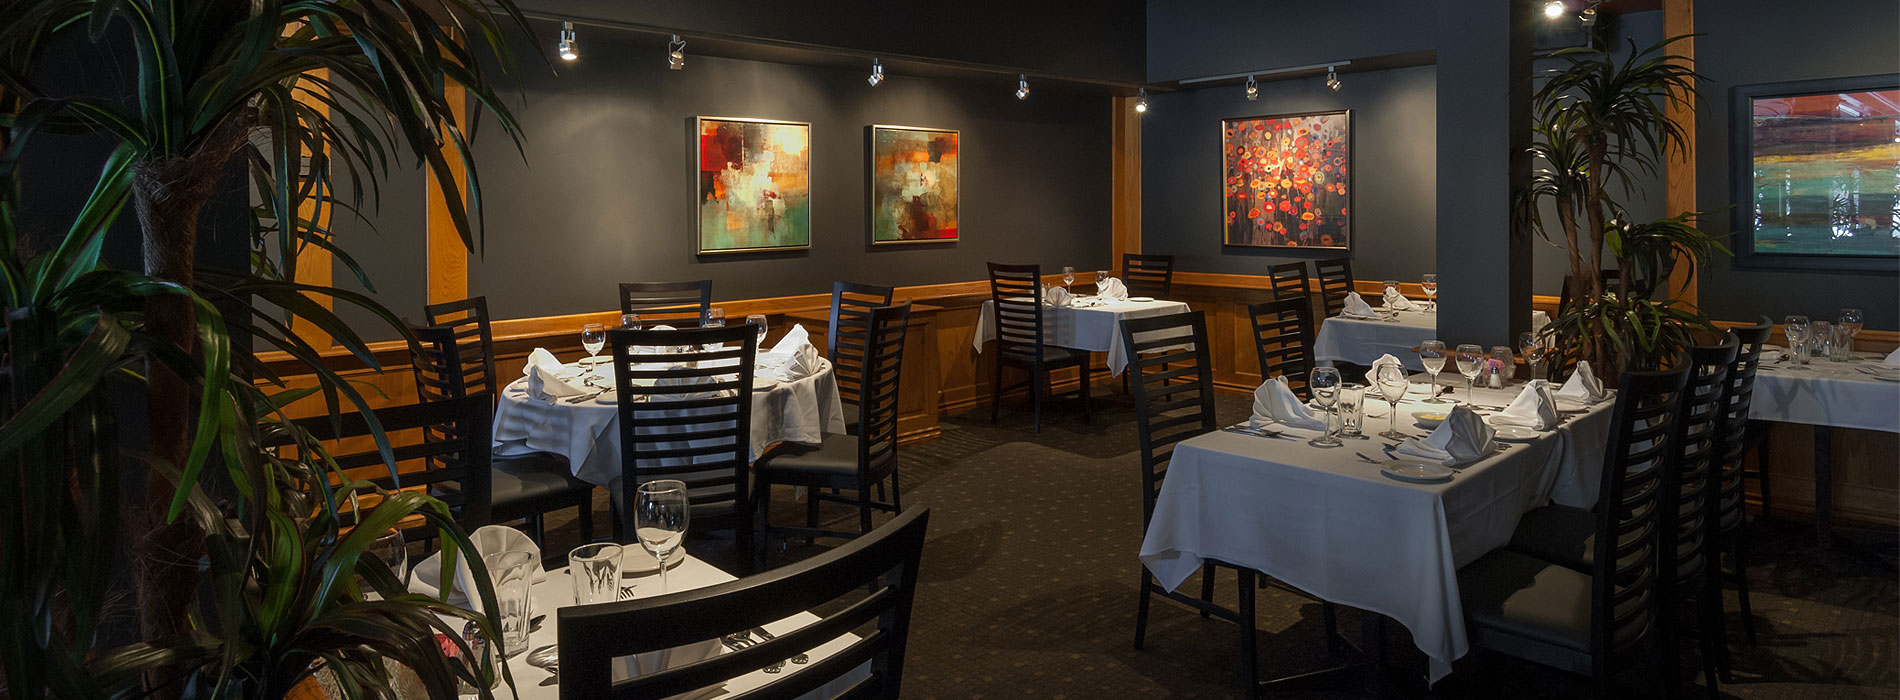 Events Private Dining Functions En